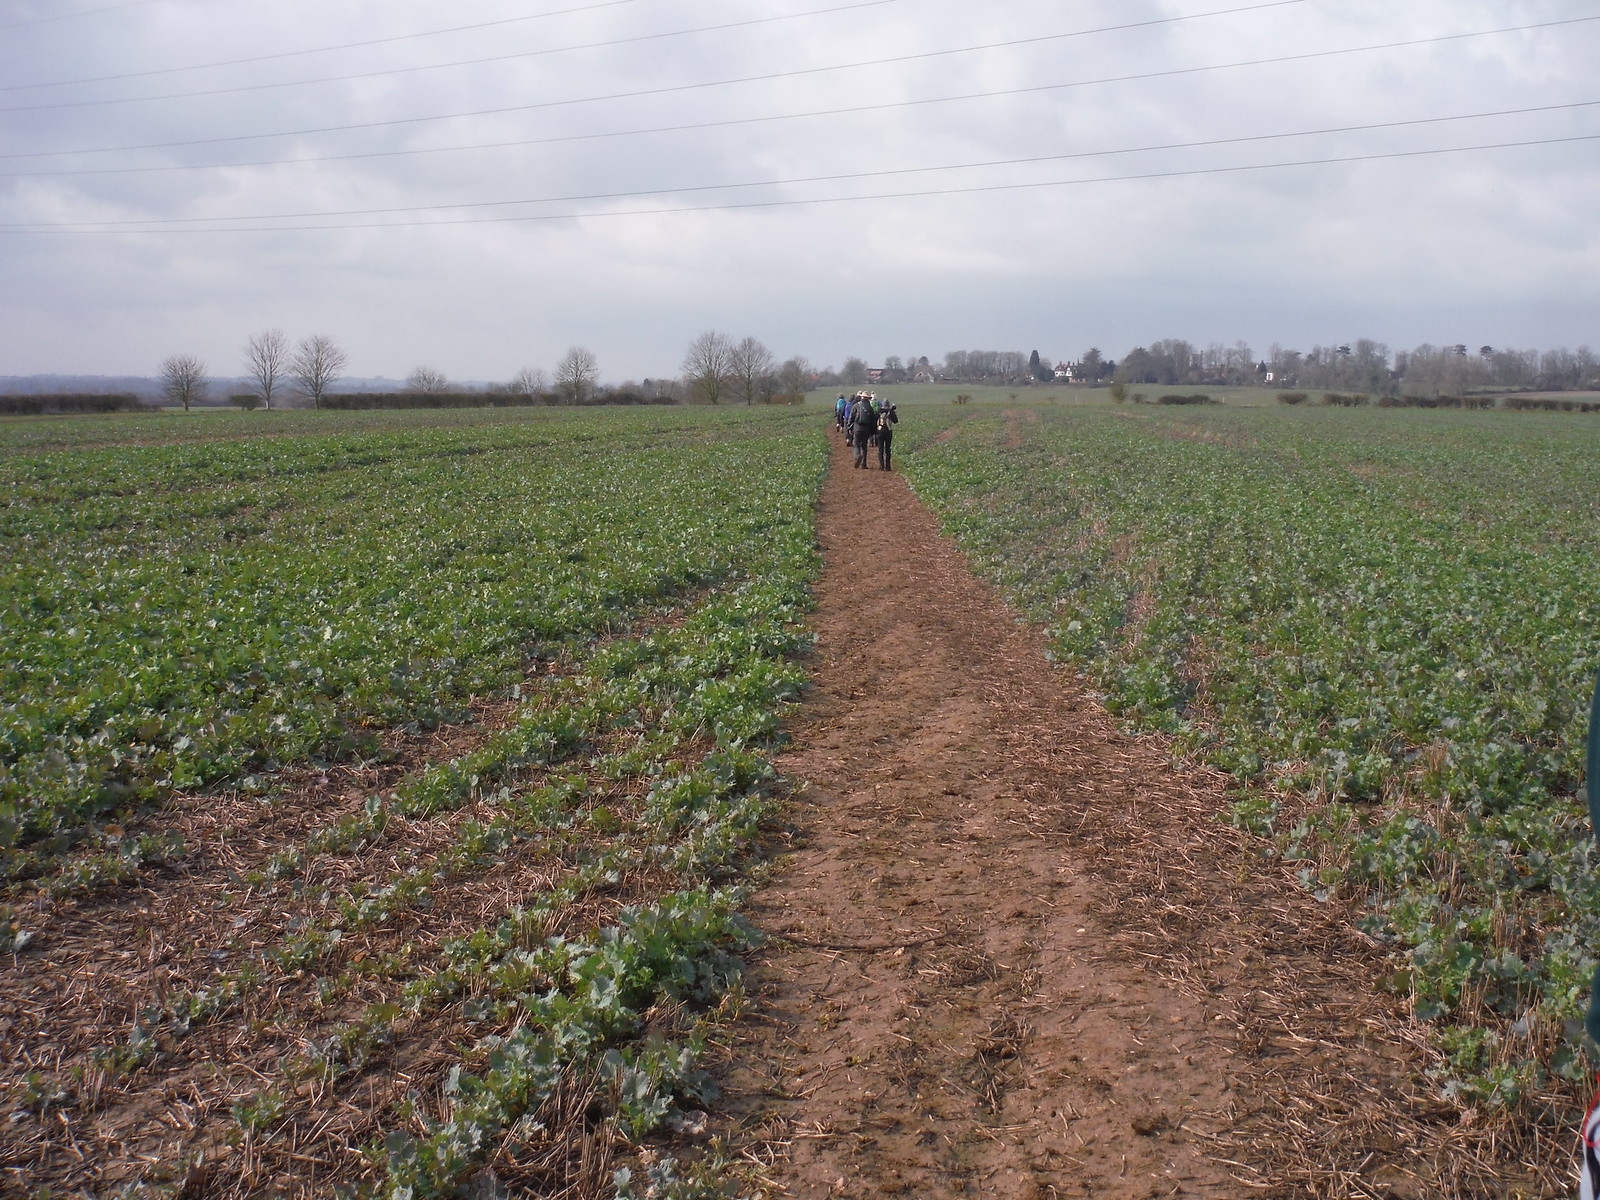 Well-cleared path through large field, Helsthorpe Farm SWC Walk Cheddington to Leighton Buzzard